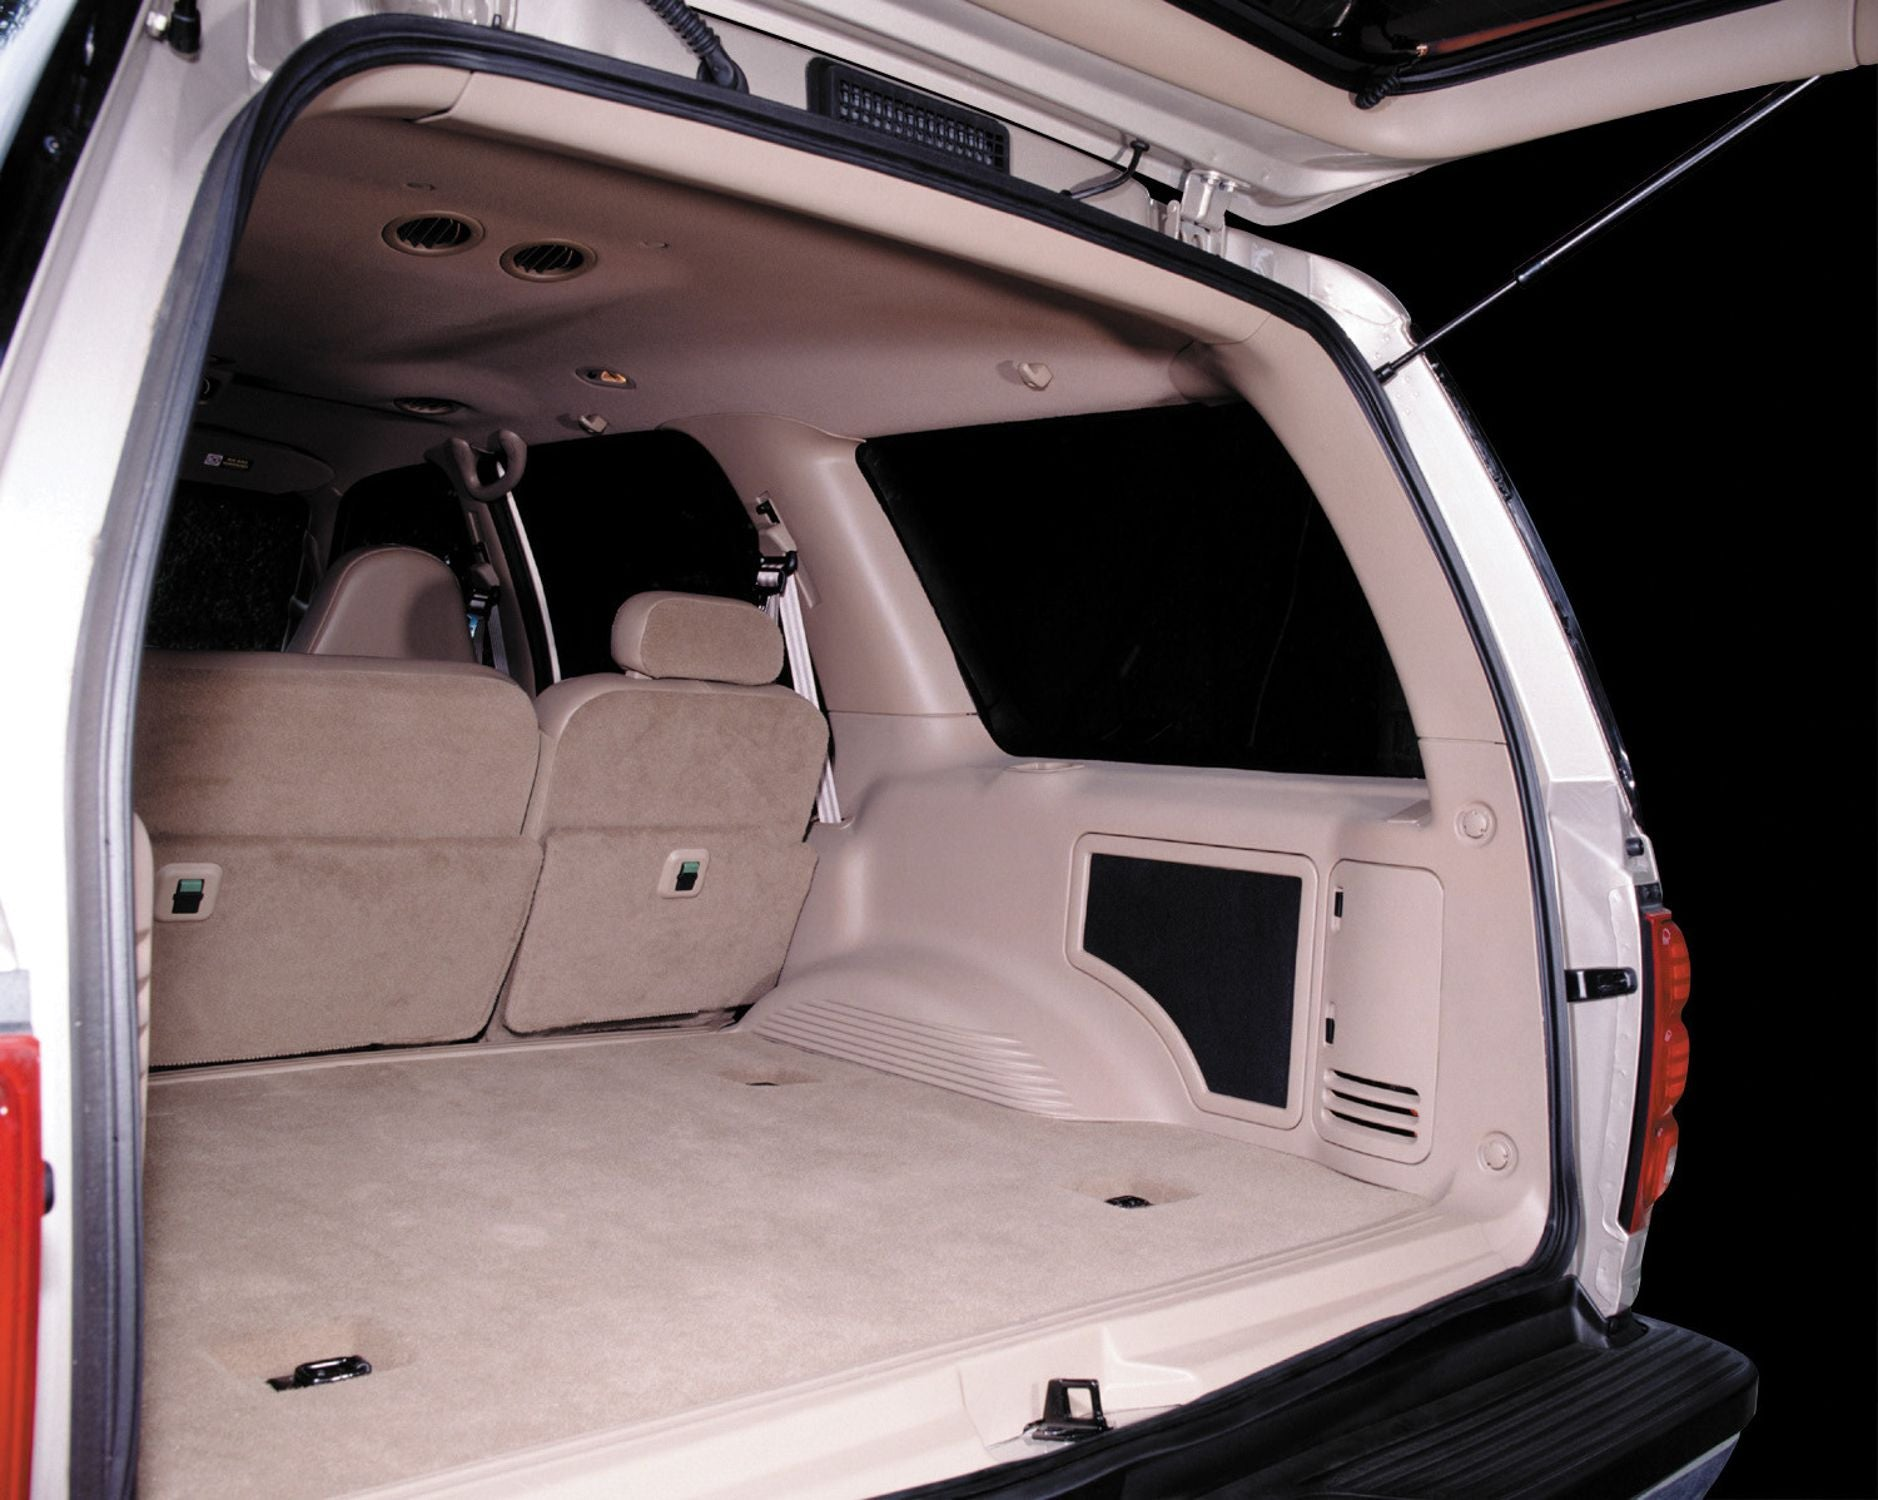 SB-F-EXPED-10W1v3 Stealthbox Installed in Vehicle